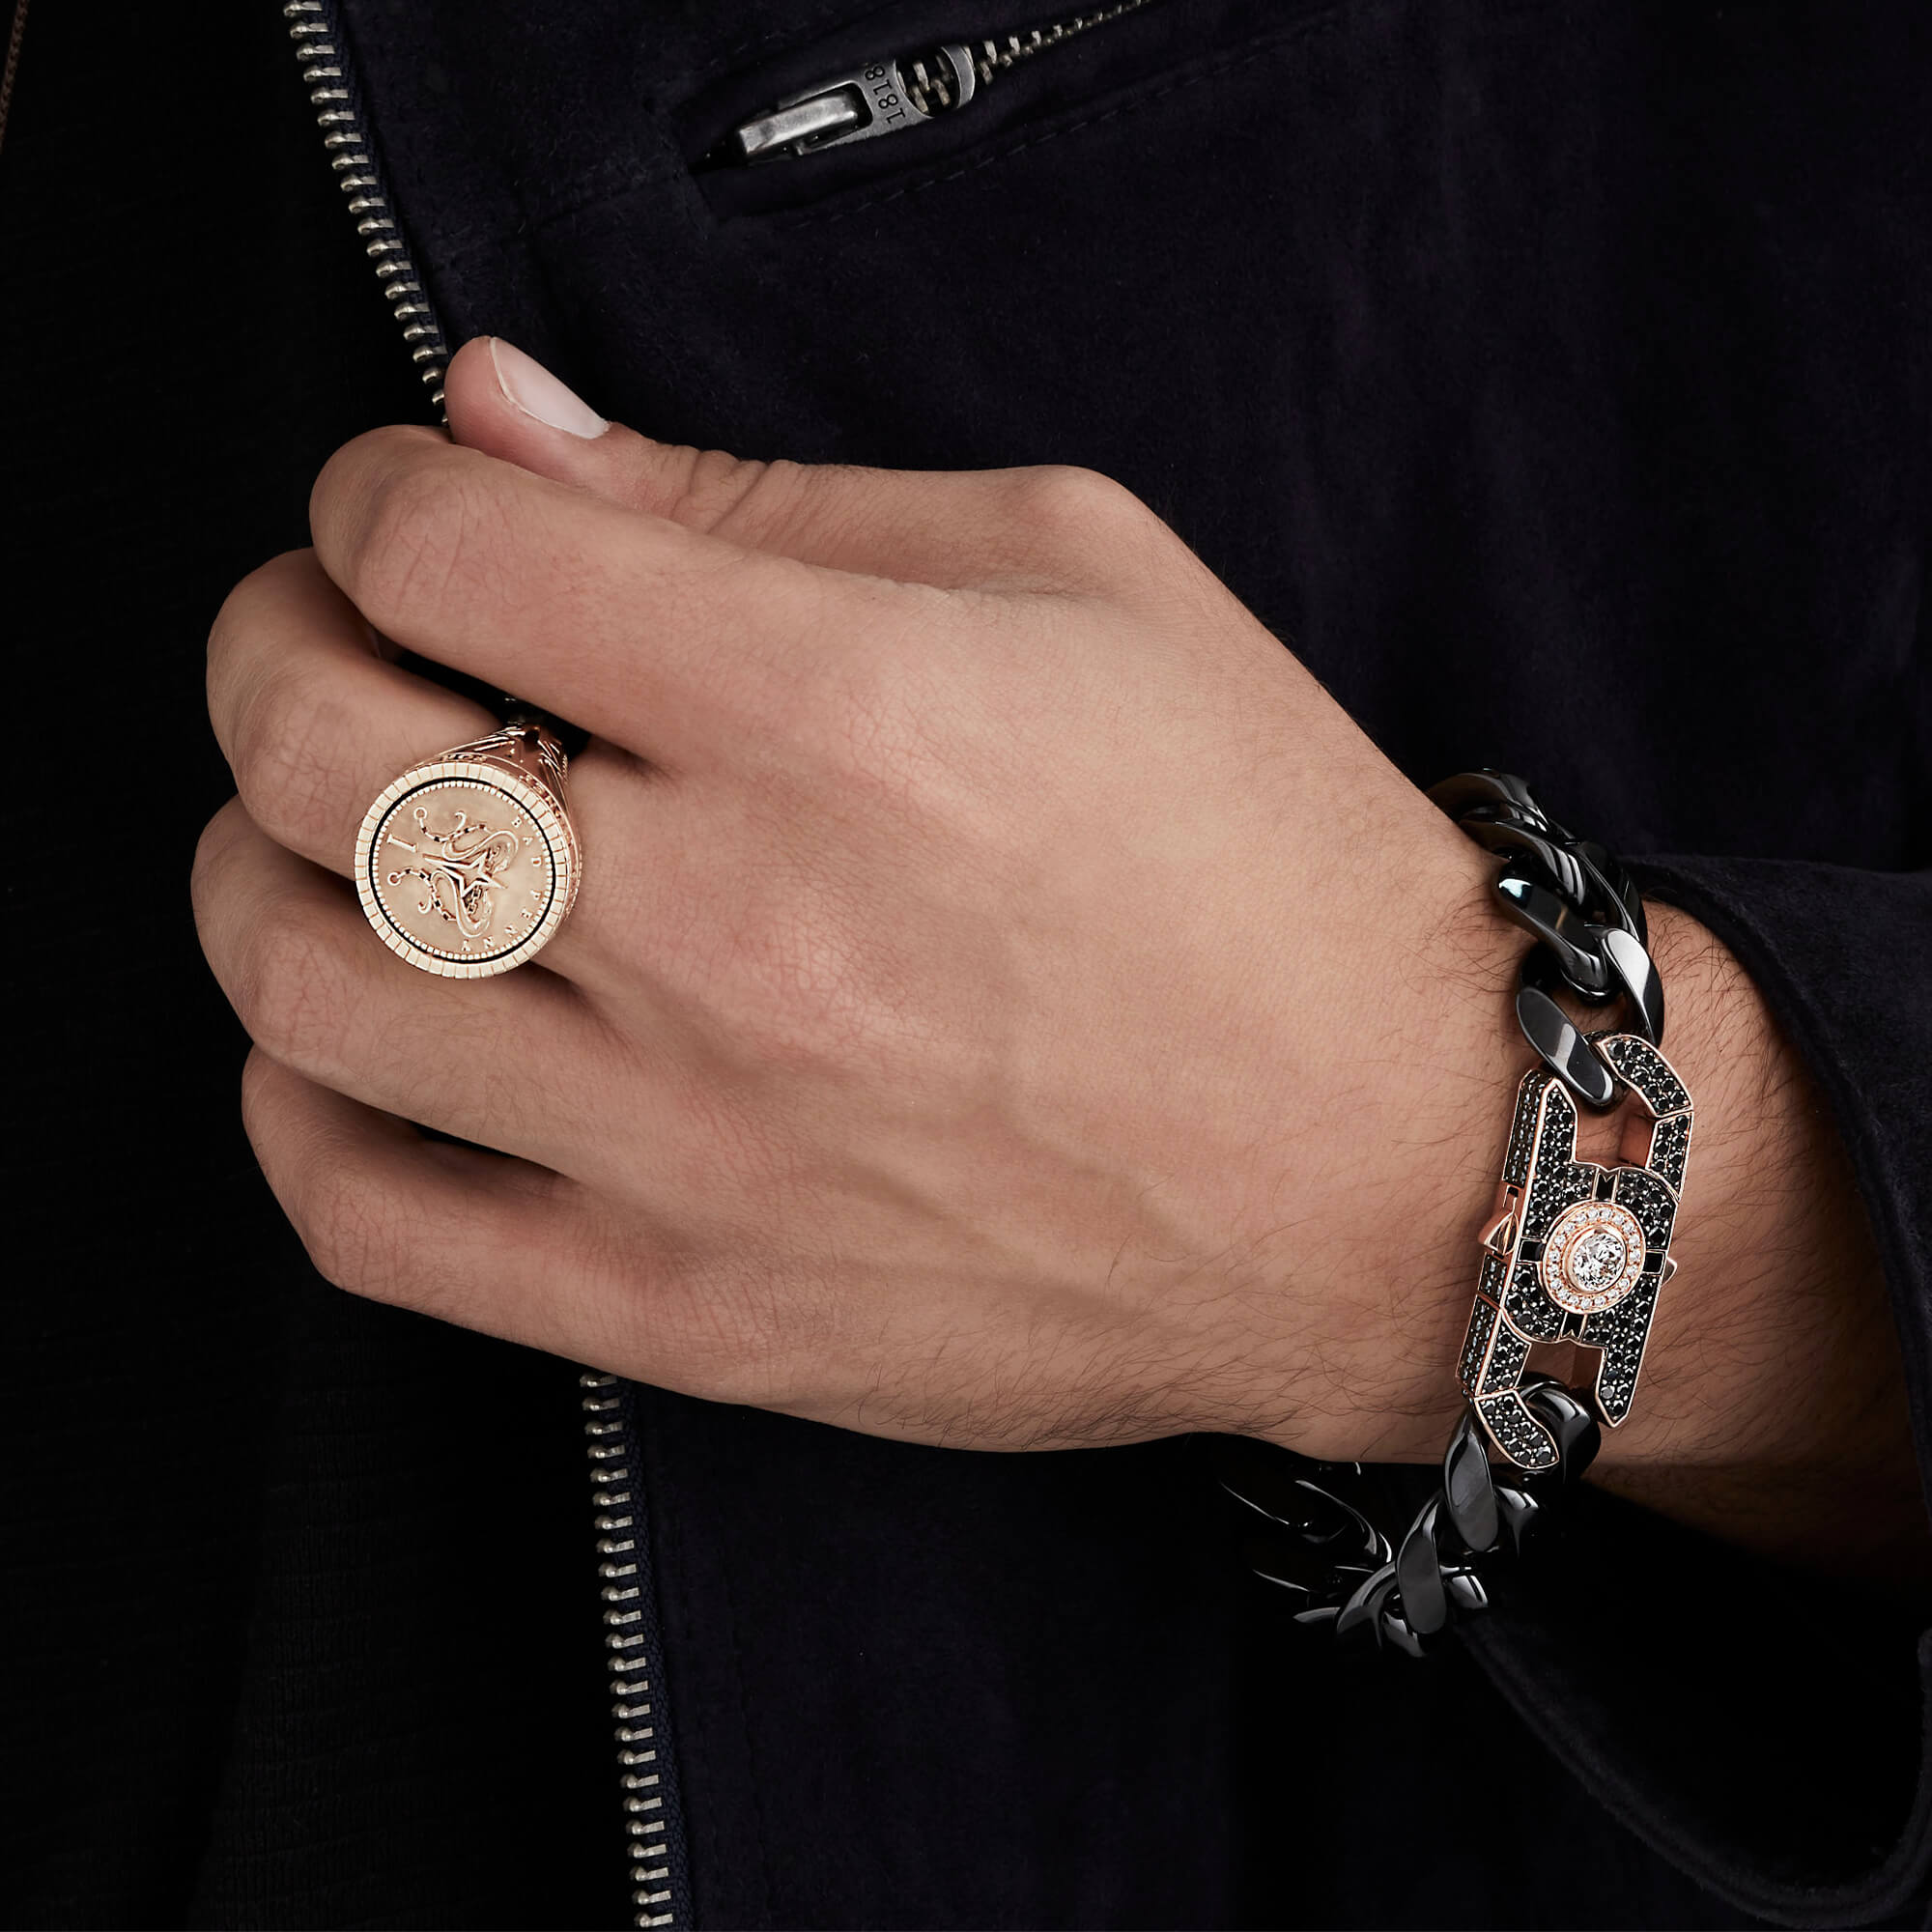 Men's Black and Gold Churchill Clasp | England Made Me